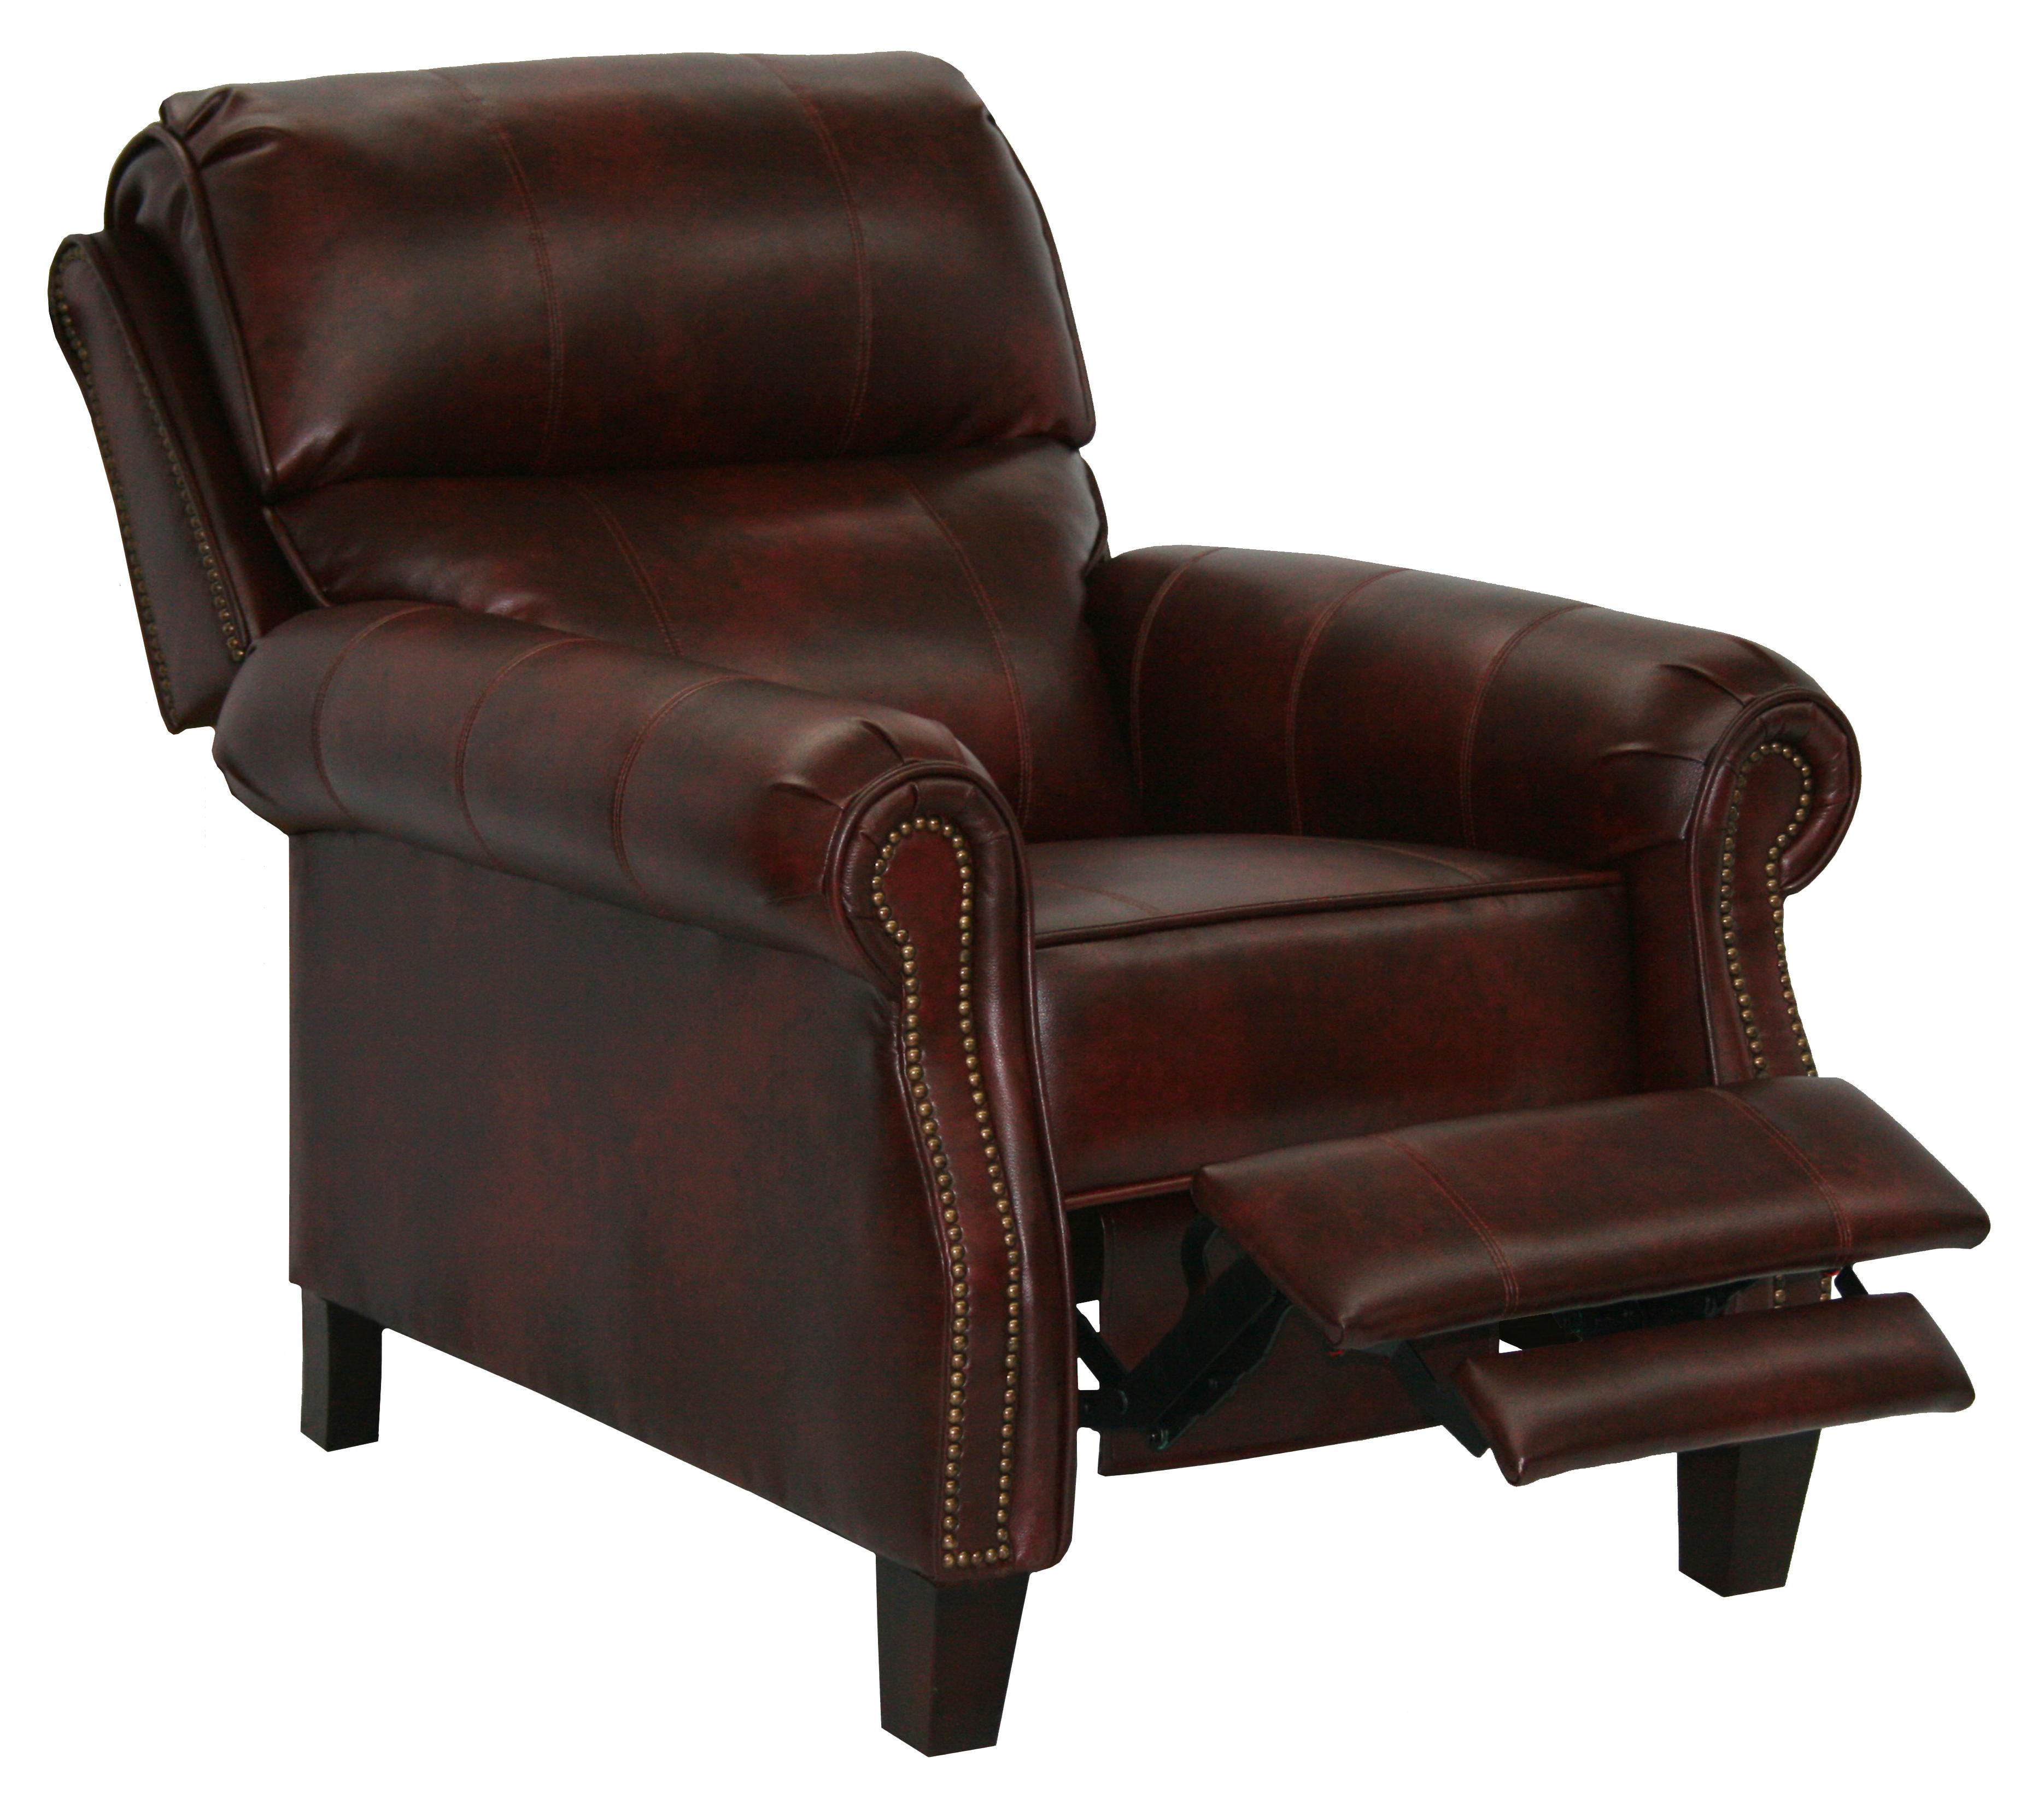 Catnapper Motion Chairs And Recliners Frazier High Leg Recliner   Item  Number: 5539 1218